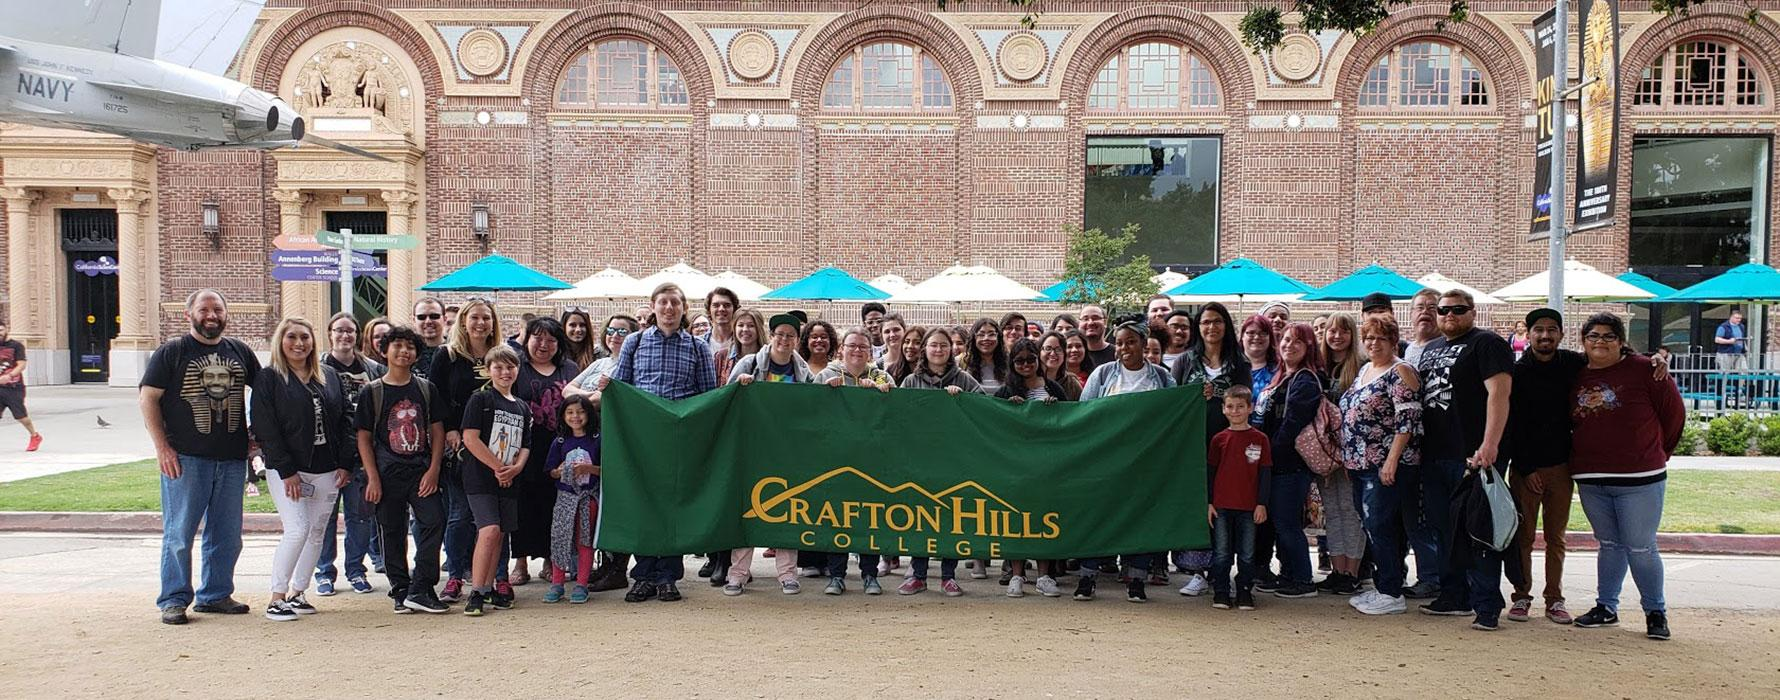 Students in front of exhibit holding Crafton Hills College Banner